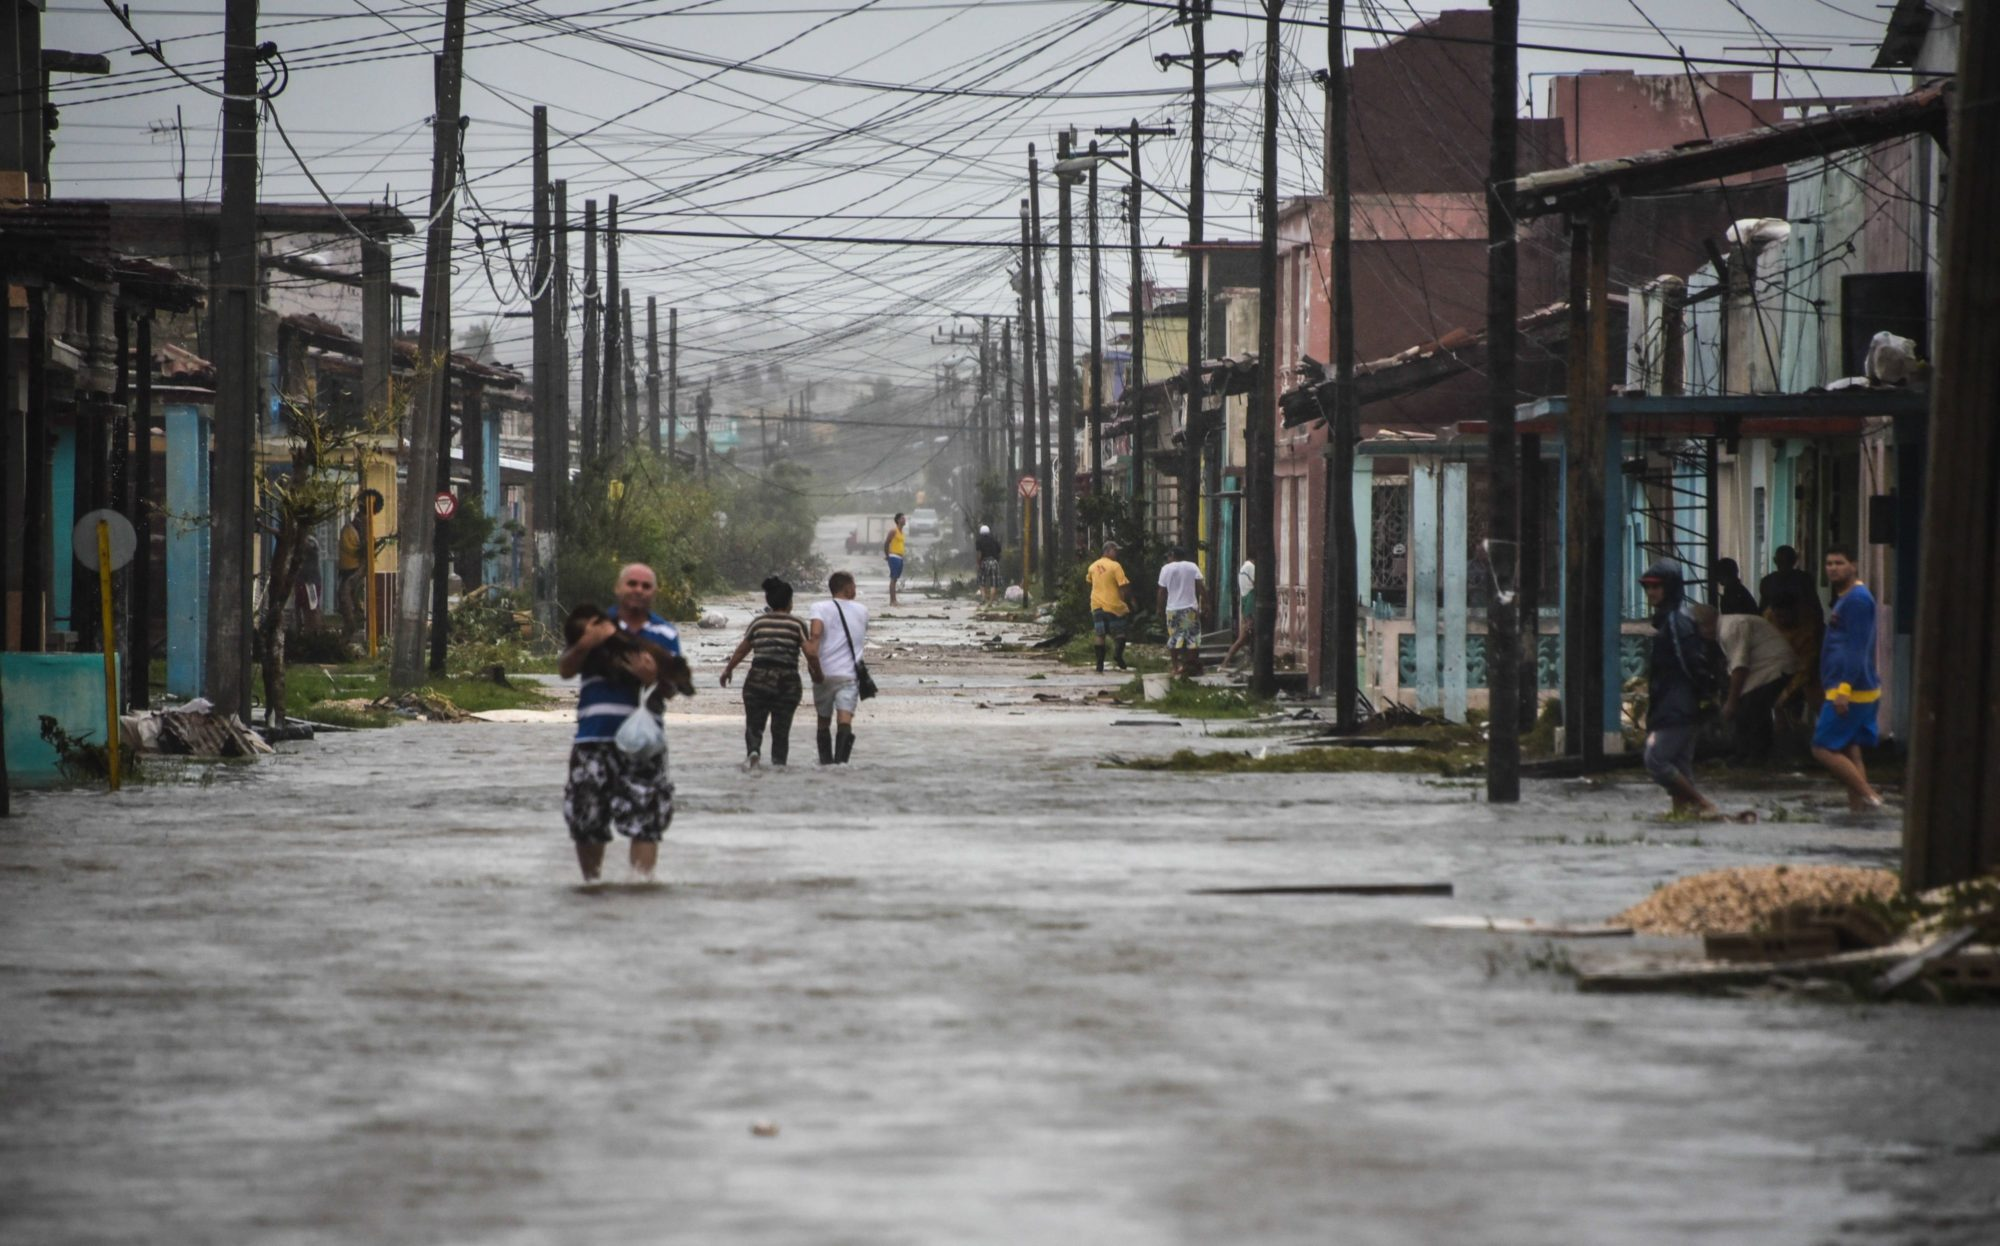 Cuban residents wade through a flooded street after Hurricane Irma passed over the island in 2017. Photo by Adalberto Roque/AFP/Getty Imagines